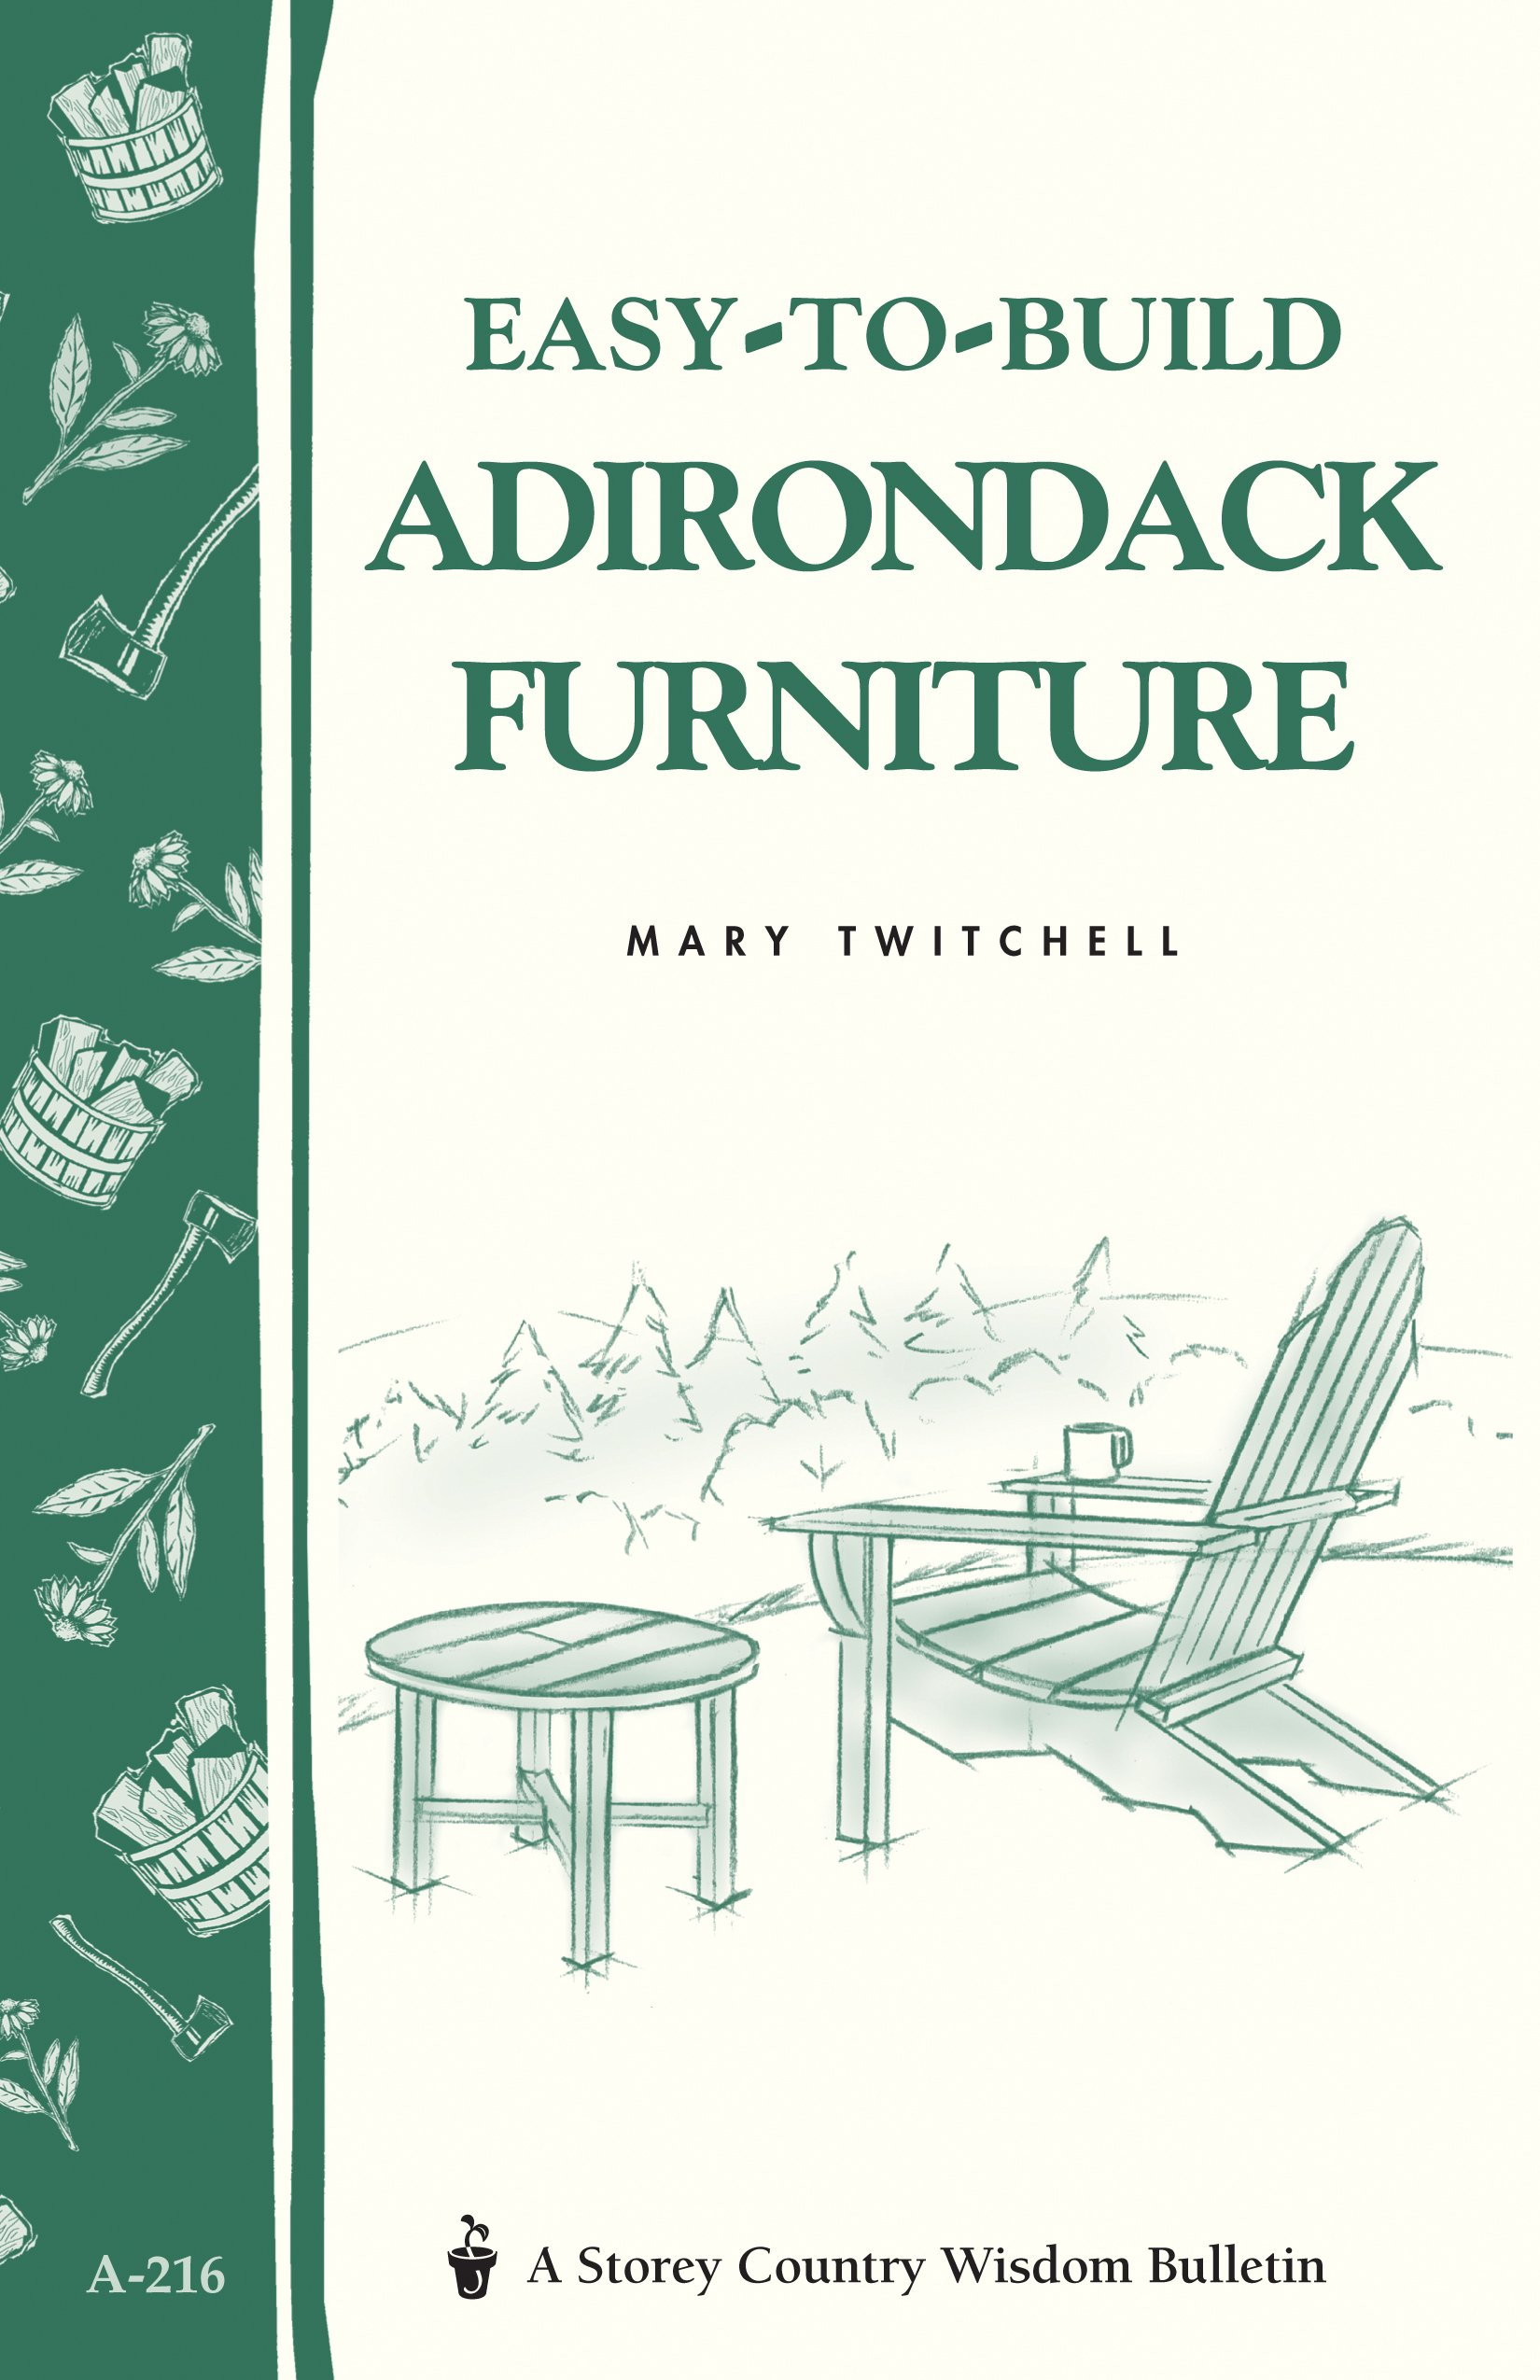 Easy To Build Adirondack Furniture: Amazon.de: Mary Twitchell: Bücher